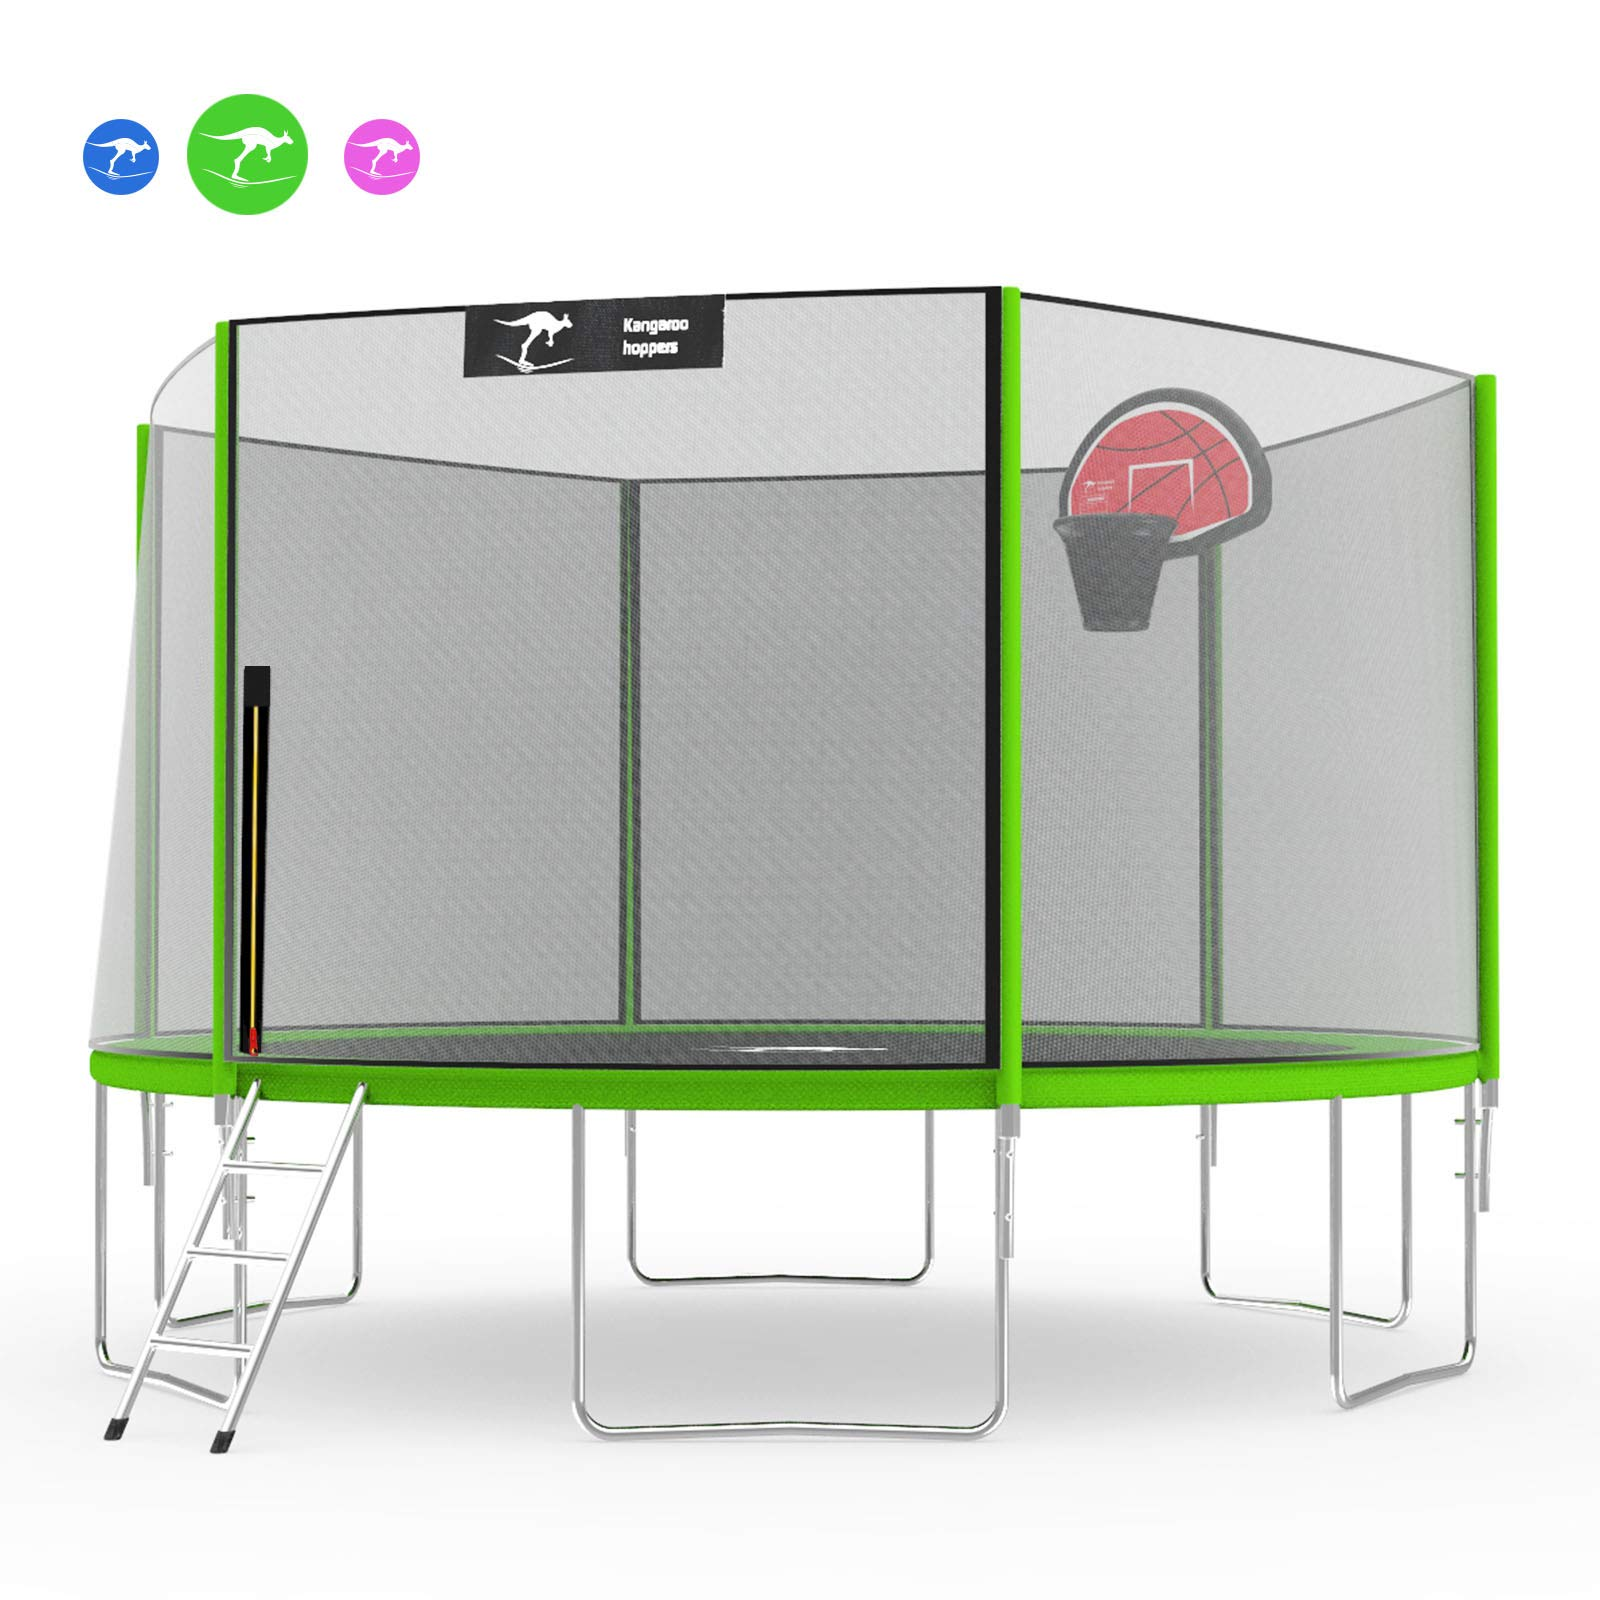 Kangaroo Hoppers 12 14 FT Trampoline with Safety Enclosure Net, Basketball Hoop and Ladder - 2019 Upgraded - Kids Basketball Hoop Trampoline - TUV and ASTM Tested - Multiple Color Choices